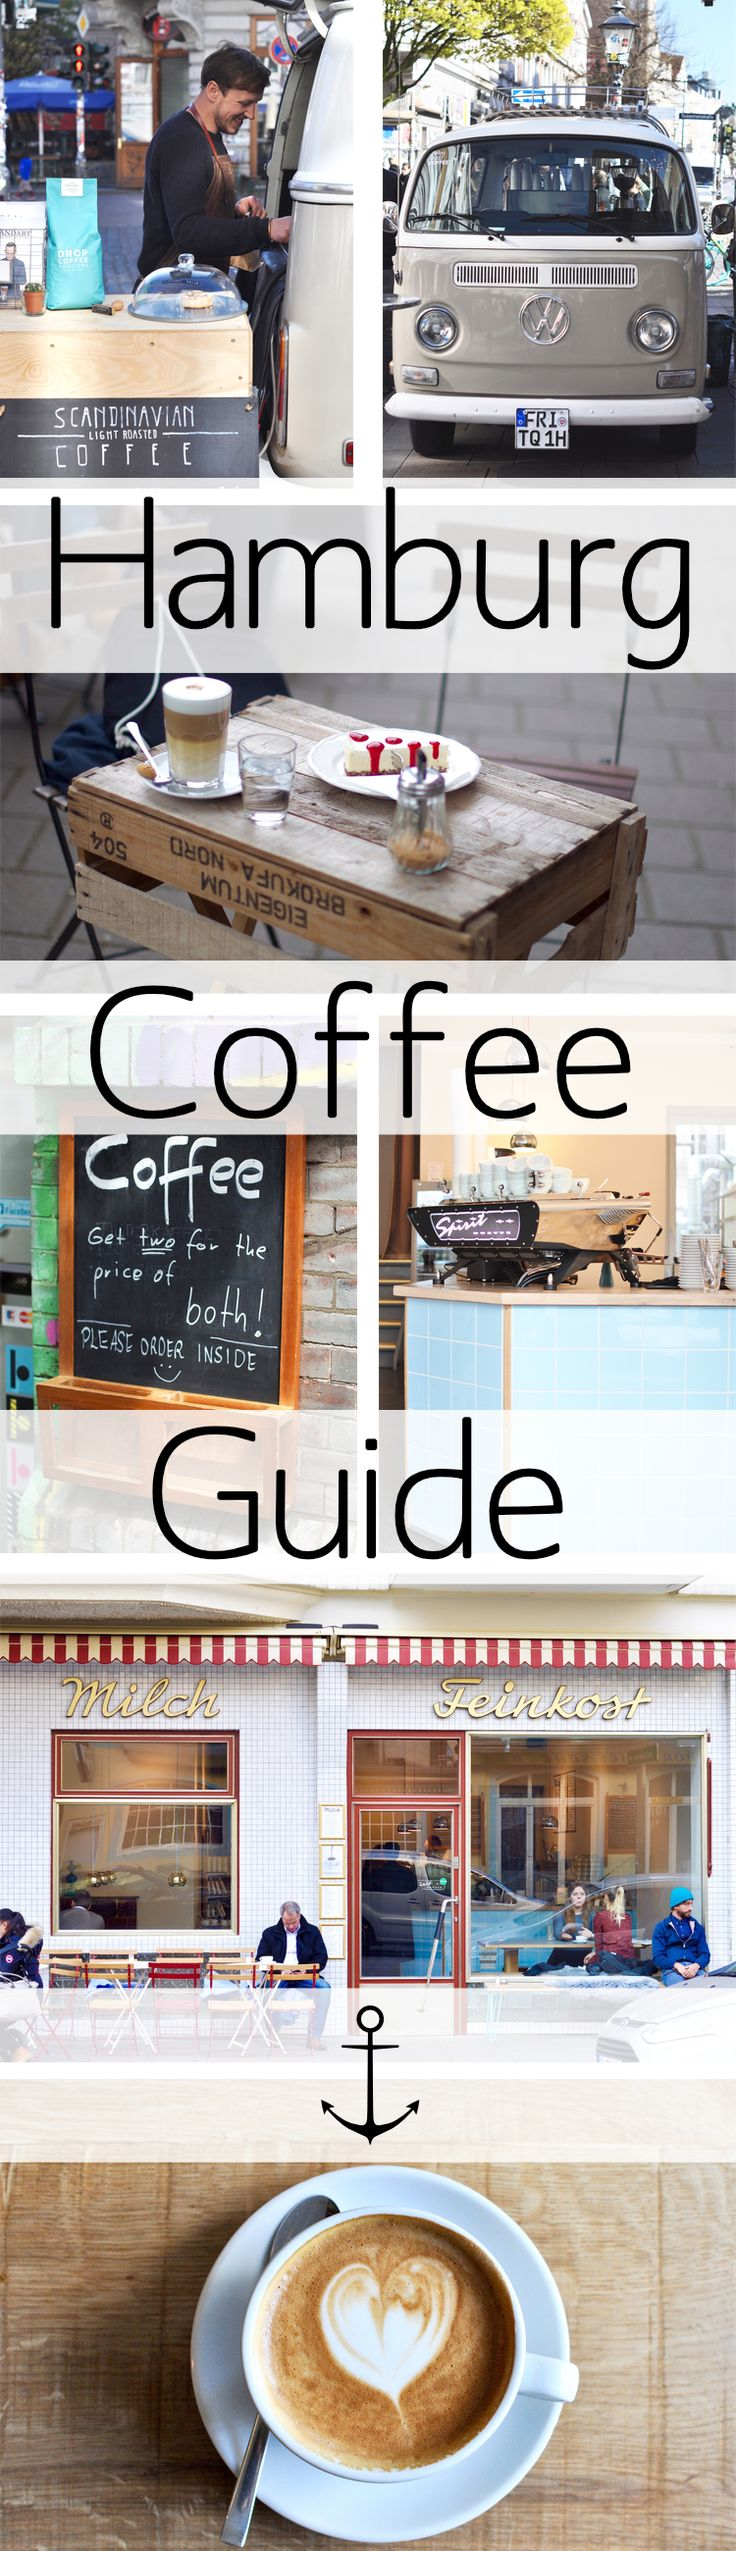 Hamburg ultimate Coffee Guide